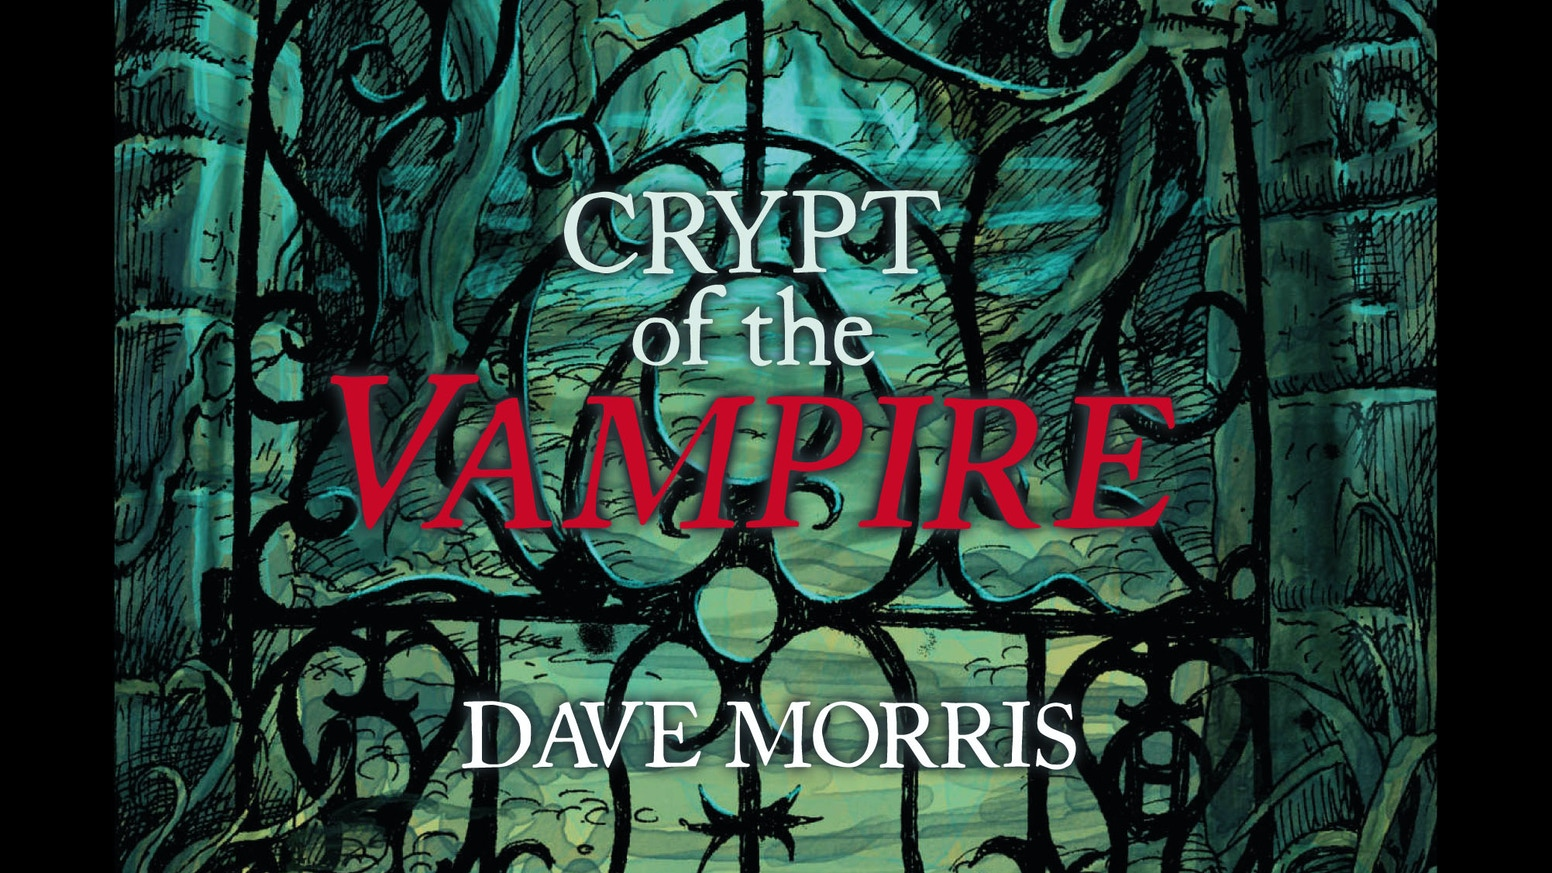 Hardback, full-colour Collector's edition of the Crypt of the Vampire gamebook by Dave Morris. Illustrated by Leo Hartas.